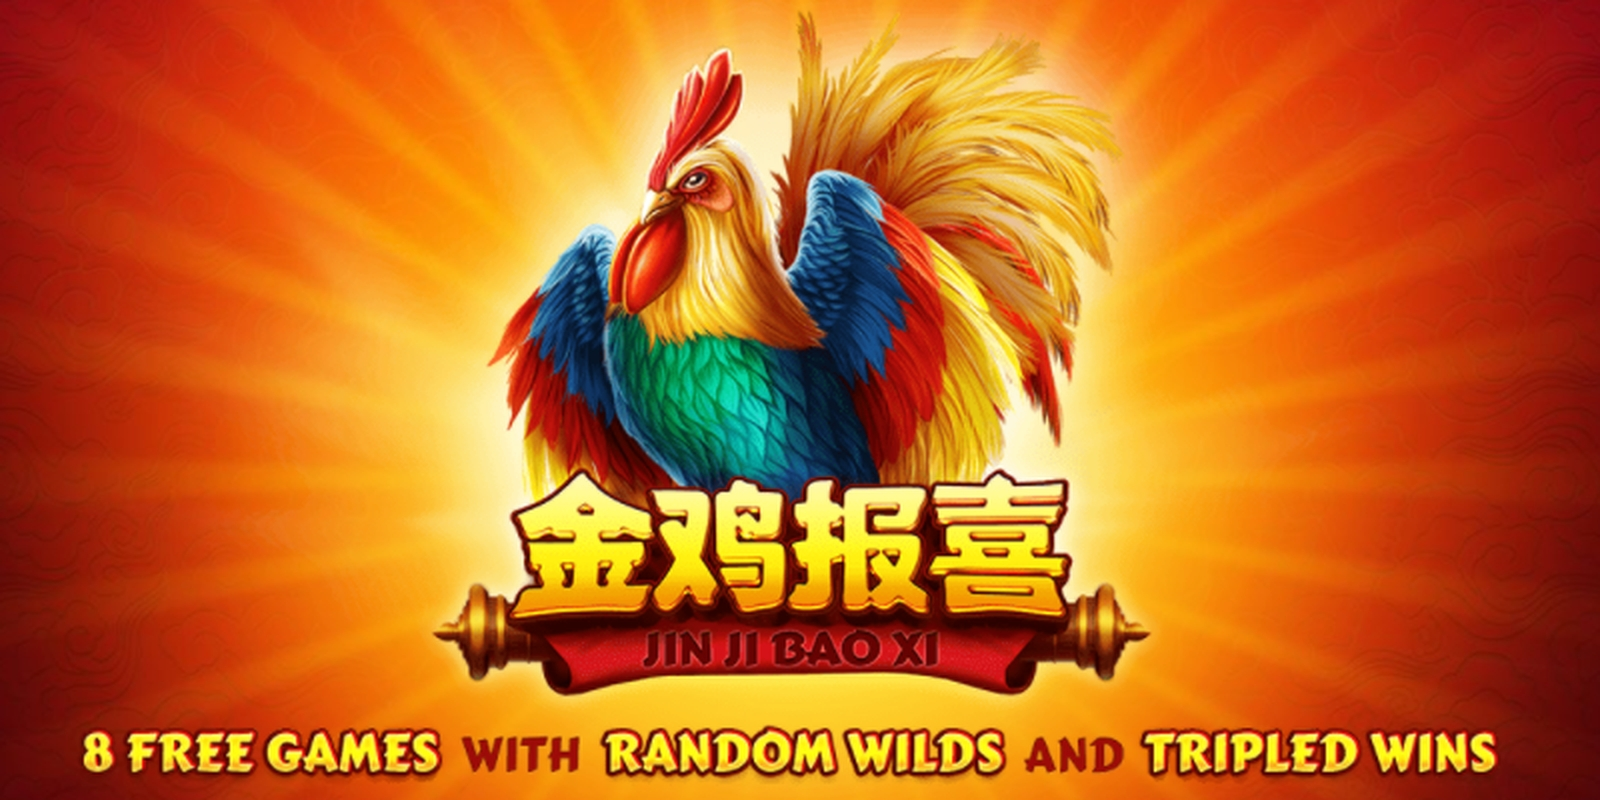 Win Money in Jin Ji Bao Xi Free Slot Game by Skywind